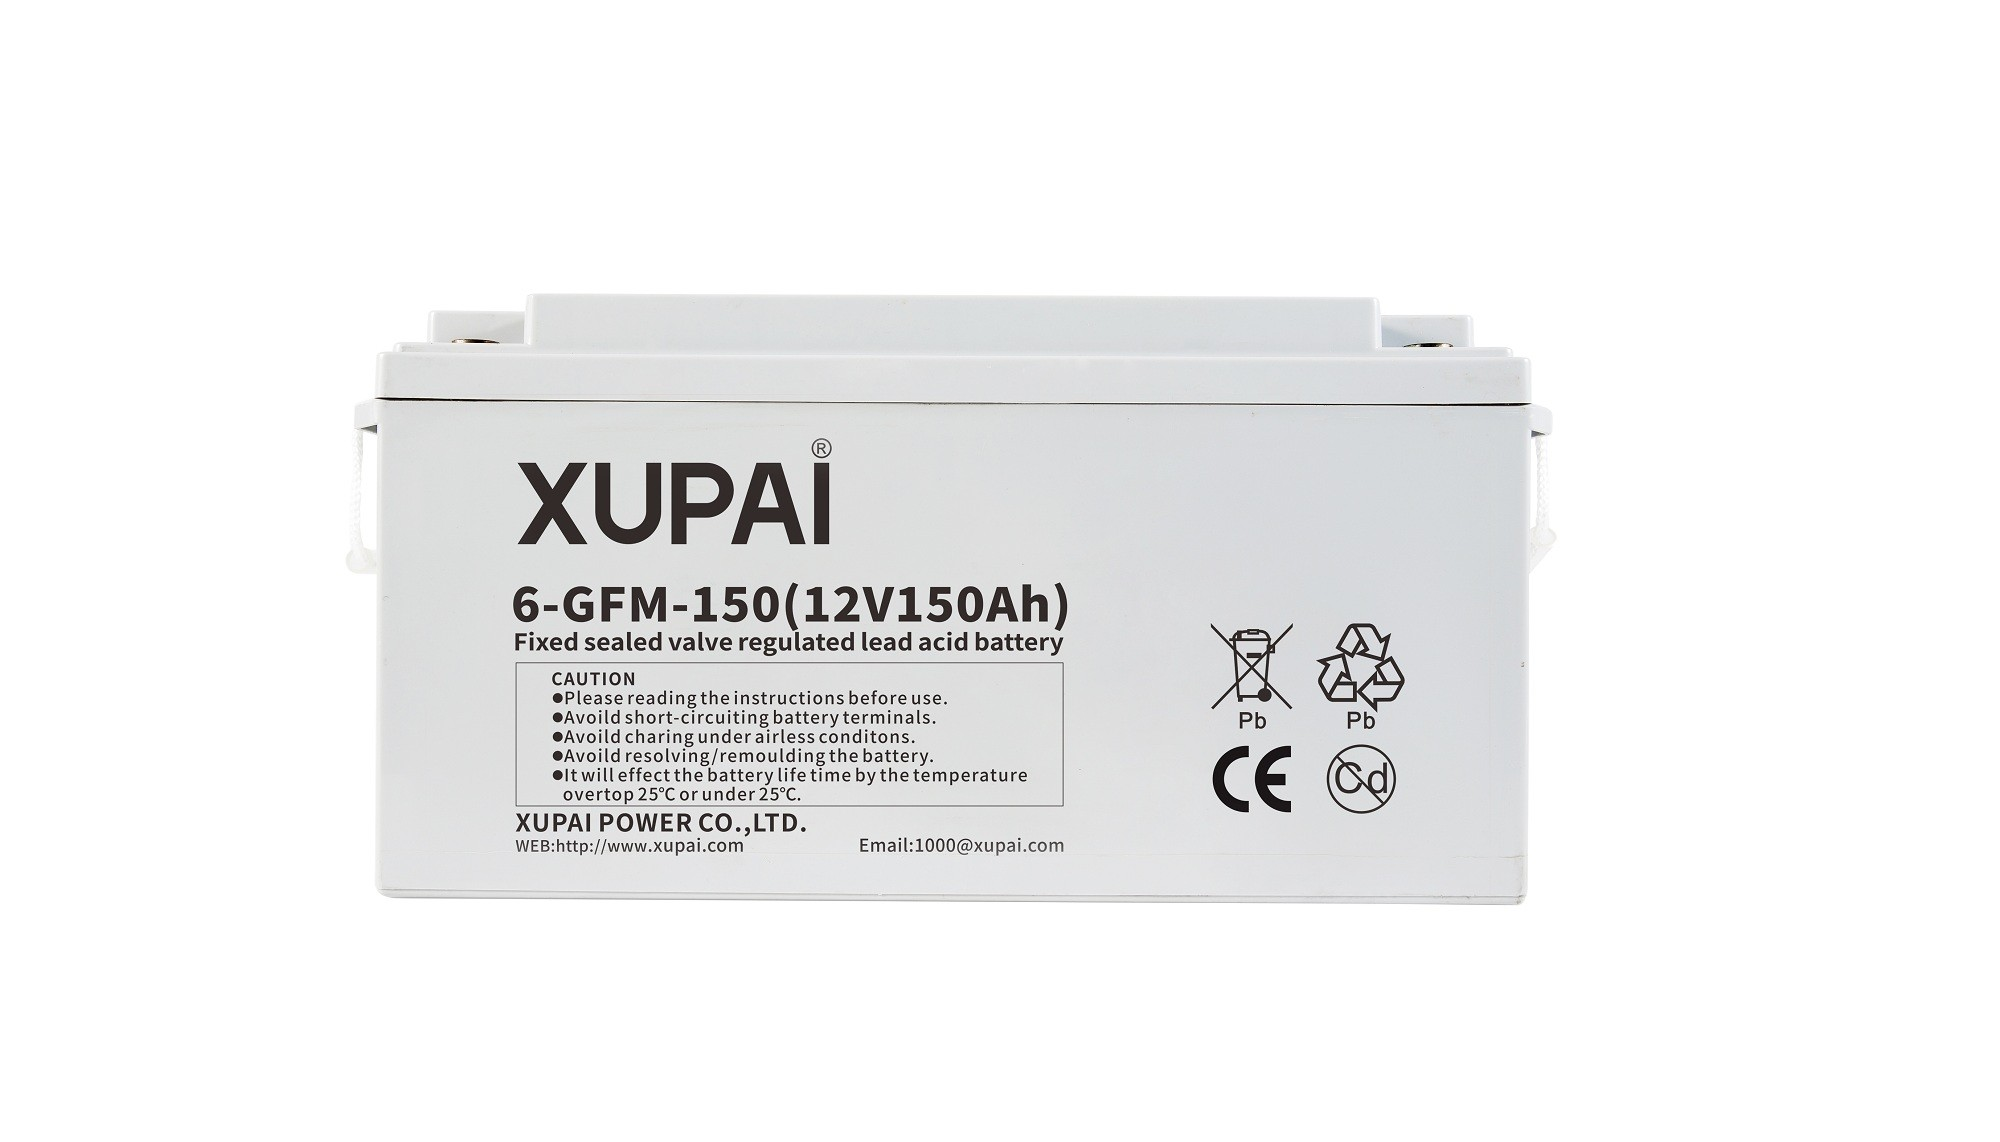 XUPAI 6-GFM-150 long life backup  base station battery